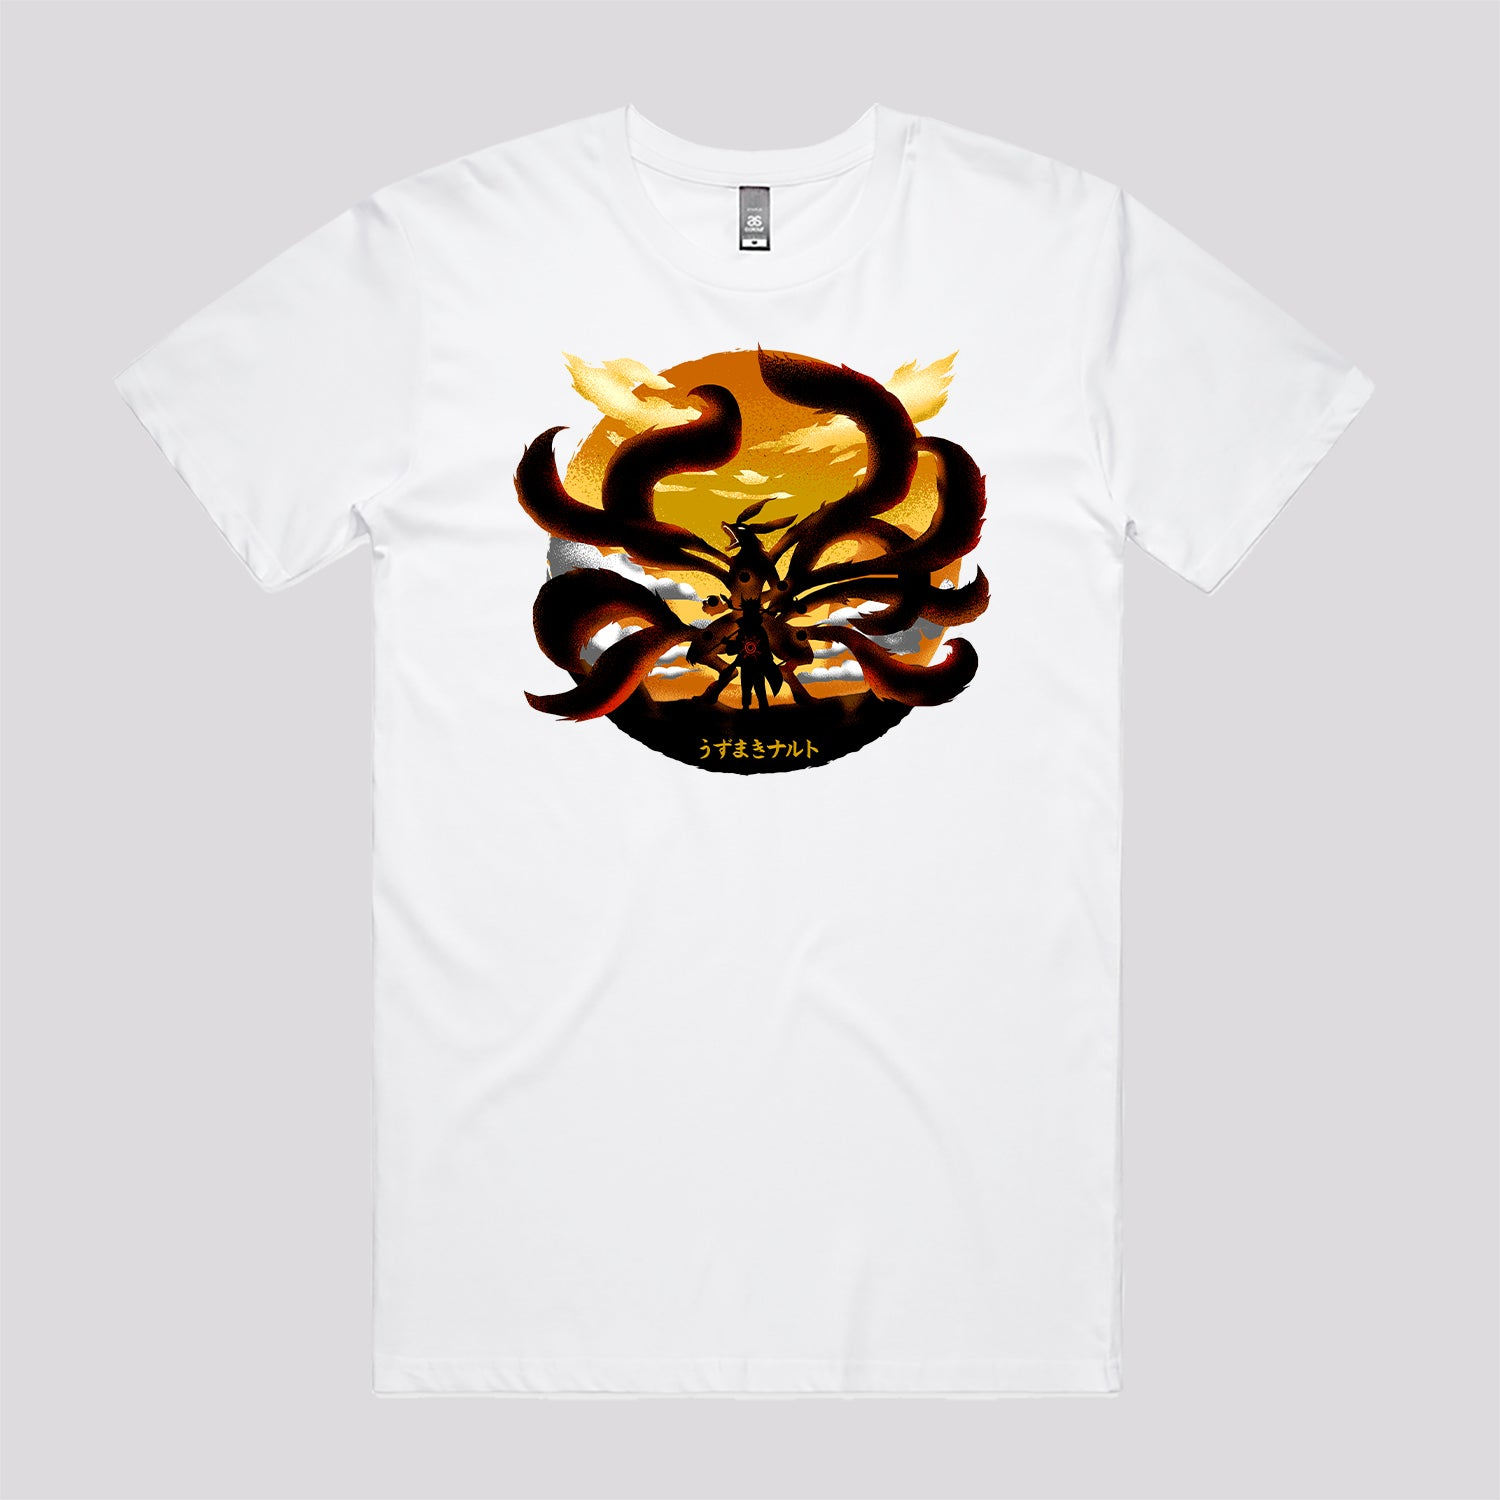 Tailed Beast Unleashed T-Shirt